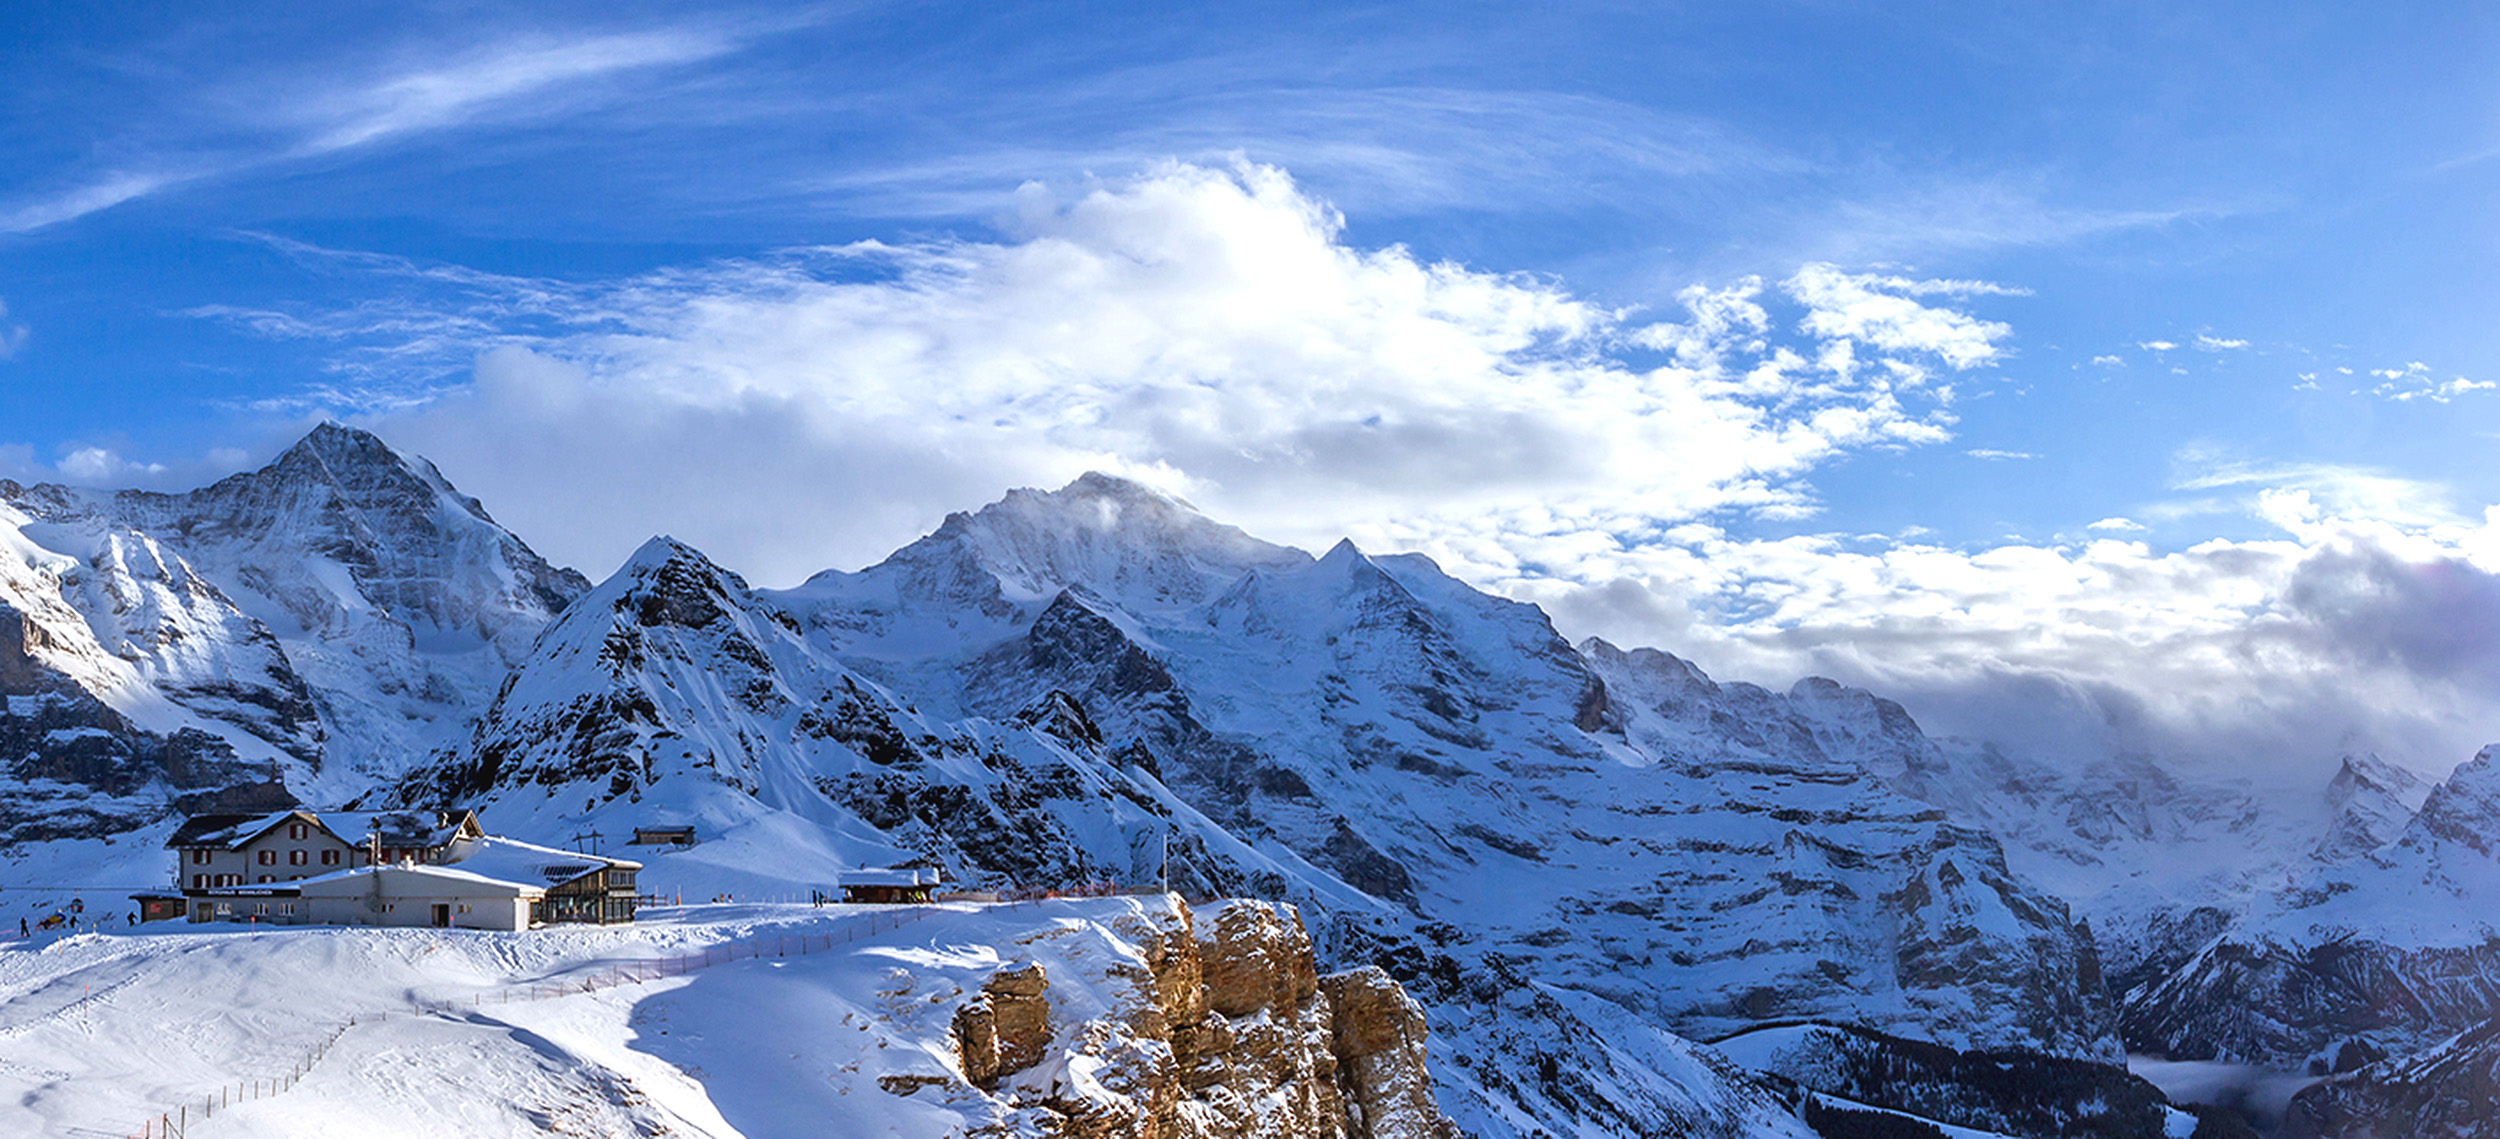 A picturesque view of very snowy Alps